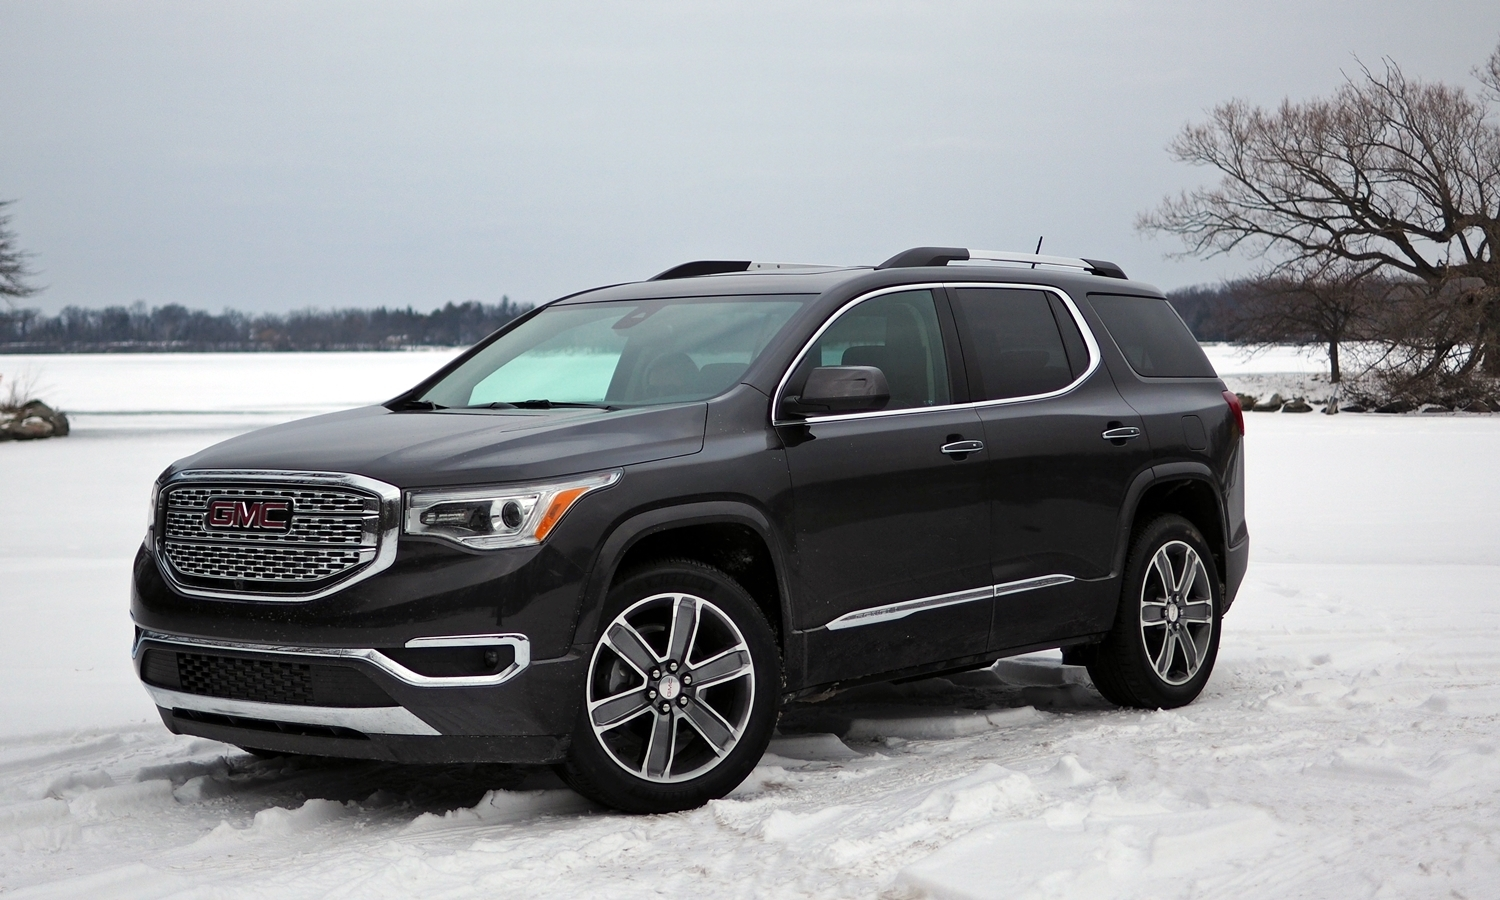 2017 Gmc Acadia Pros And Cons At Truedelta 2017 Gmc